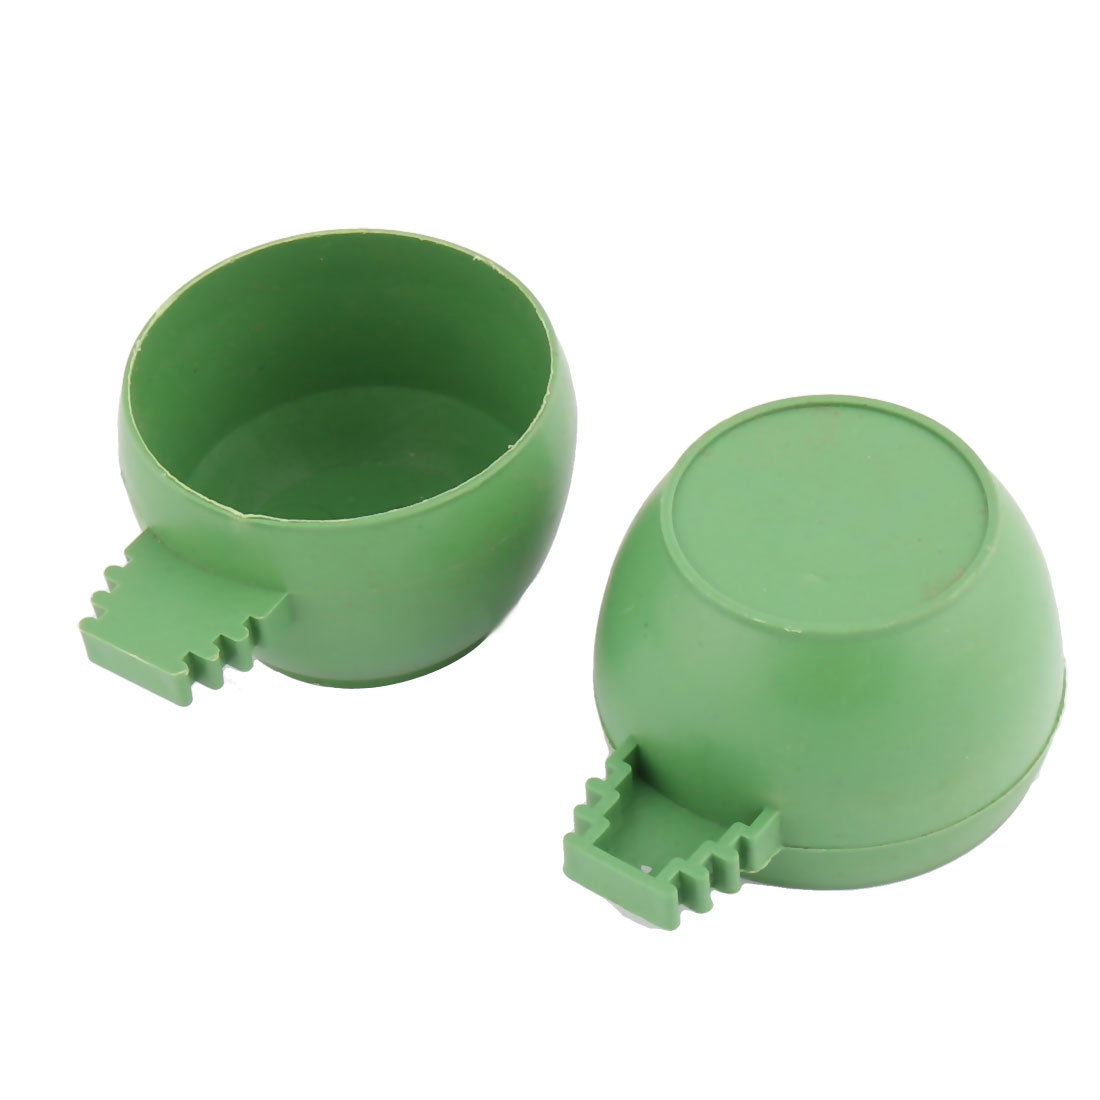 Pigeon Sparrow Plastic Round Shape Water Feeder Bird Drinking Cup Green 2 Pcs